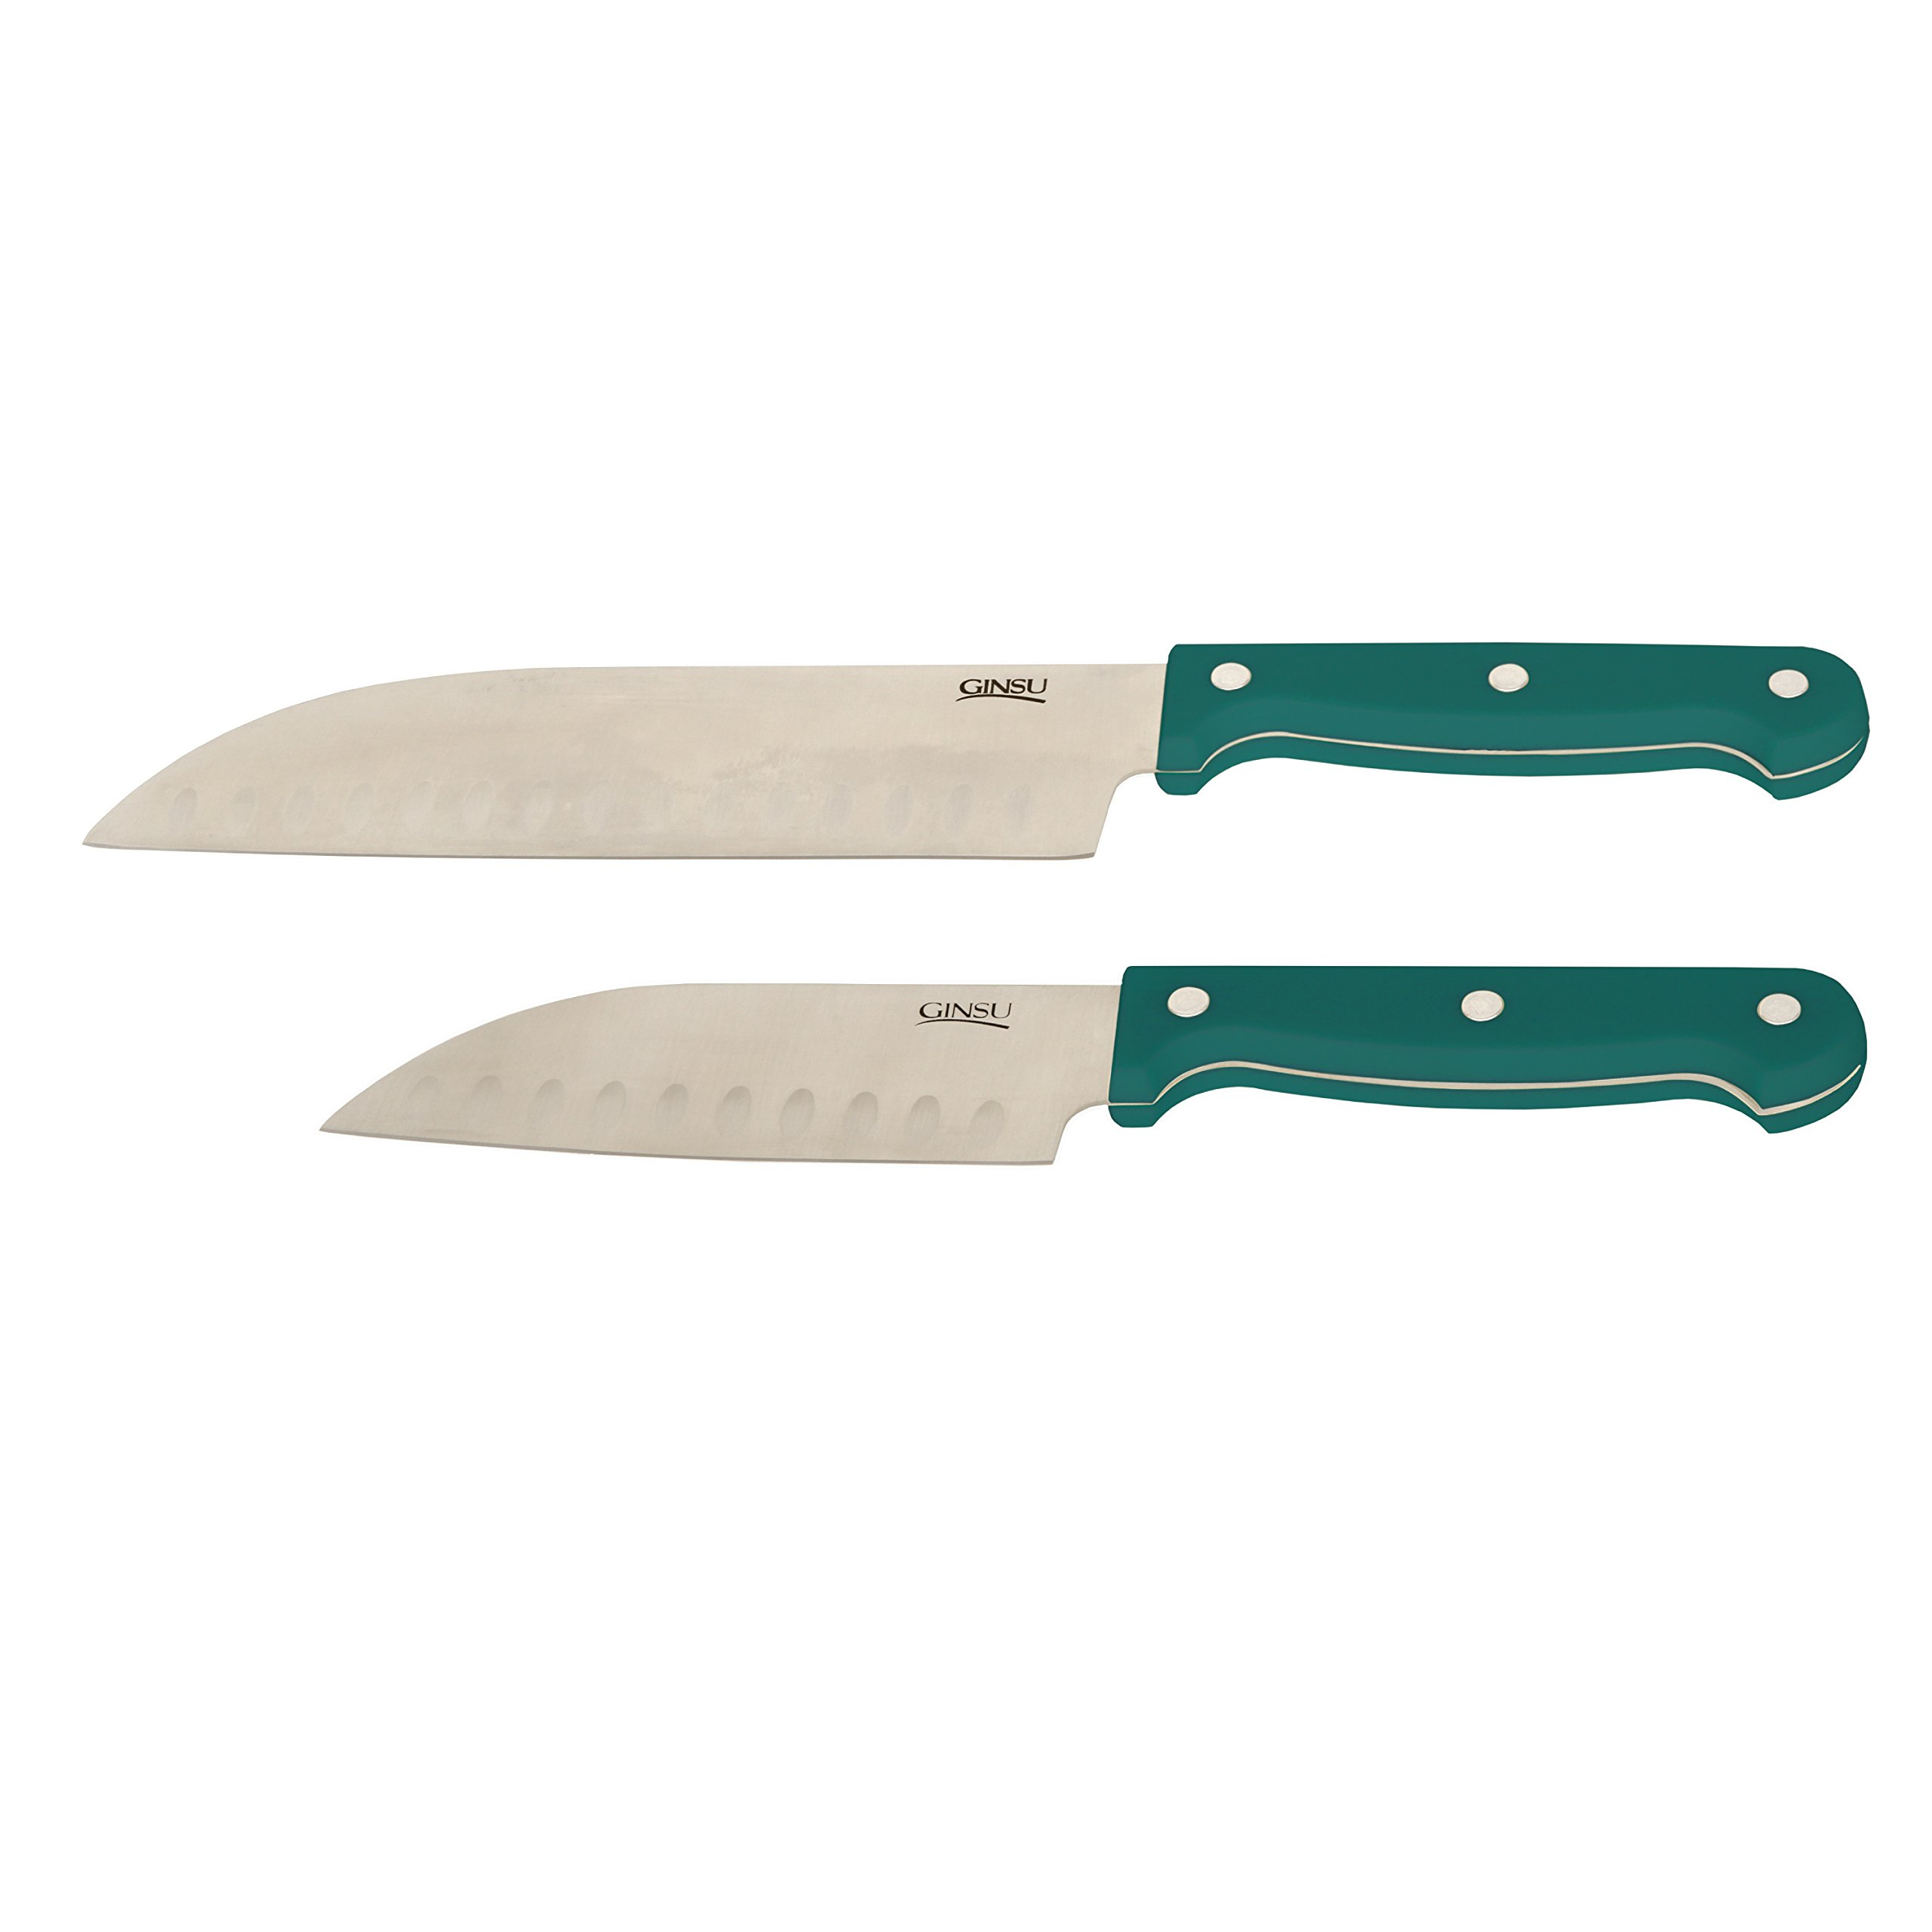 Ginsu Essential Series 2-Piece Stainless Steel Santoku Knife Set – Cutlery Set with Teal Kitchen Knives, 04861OTDS